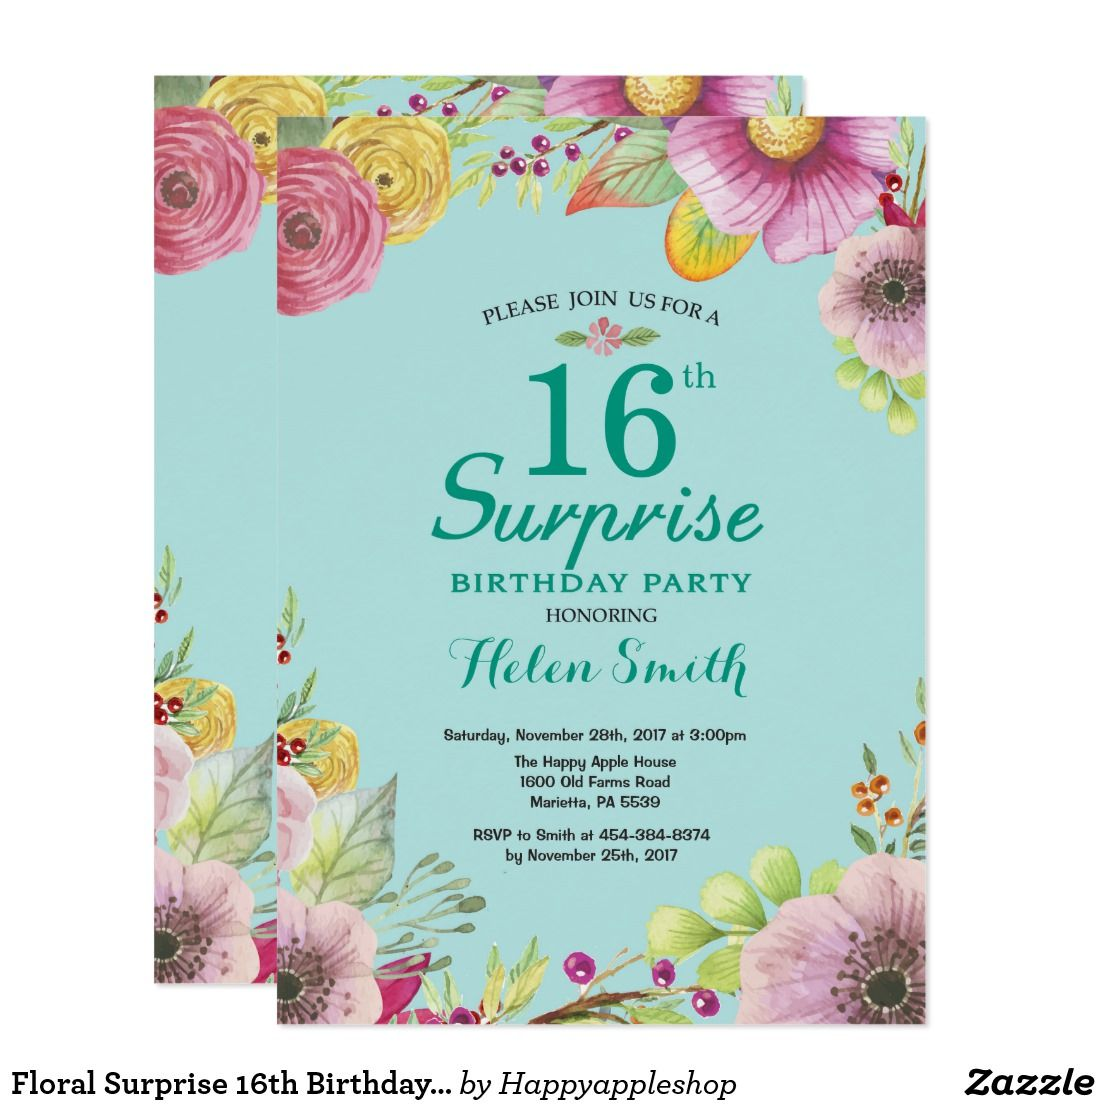 Floral Surprise 16th Birthday Invitation Teal For Women Watercolor Aqua Turquoise Background